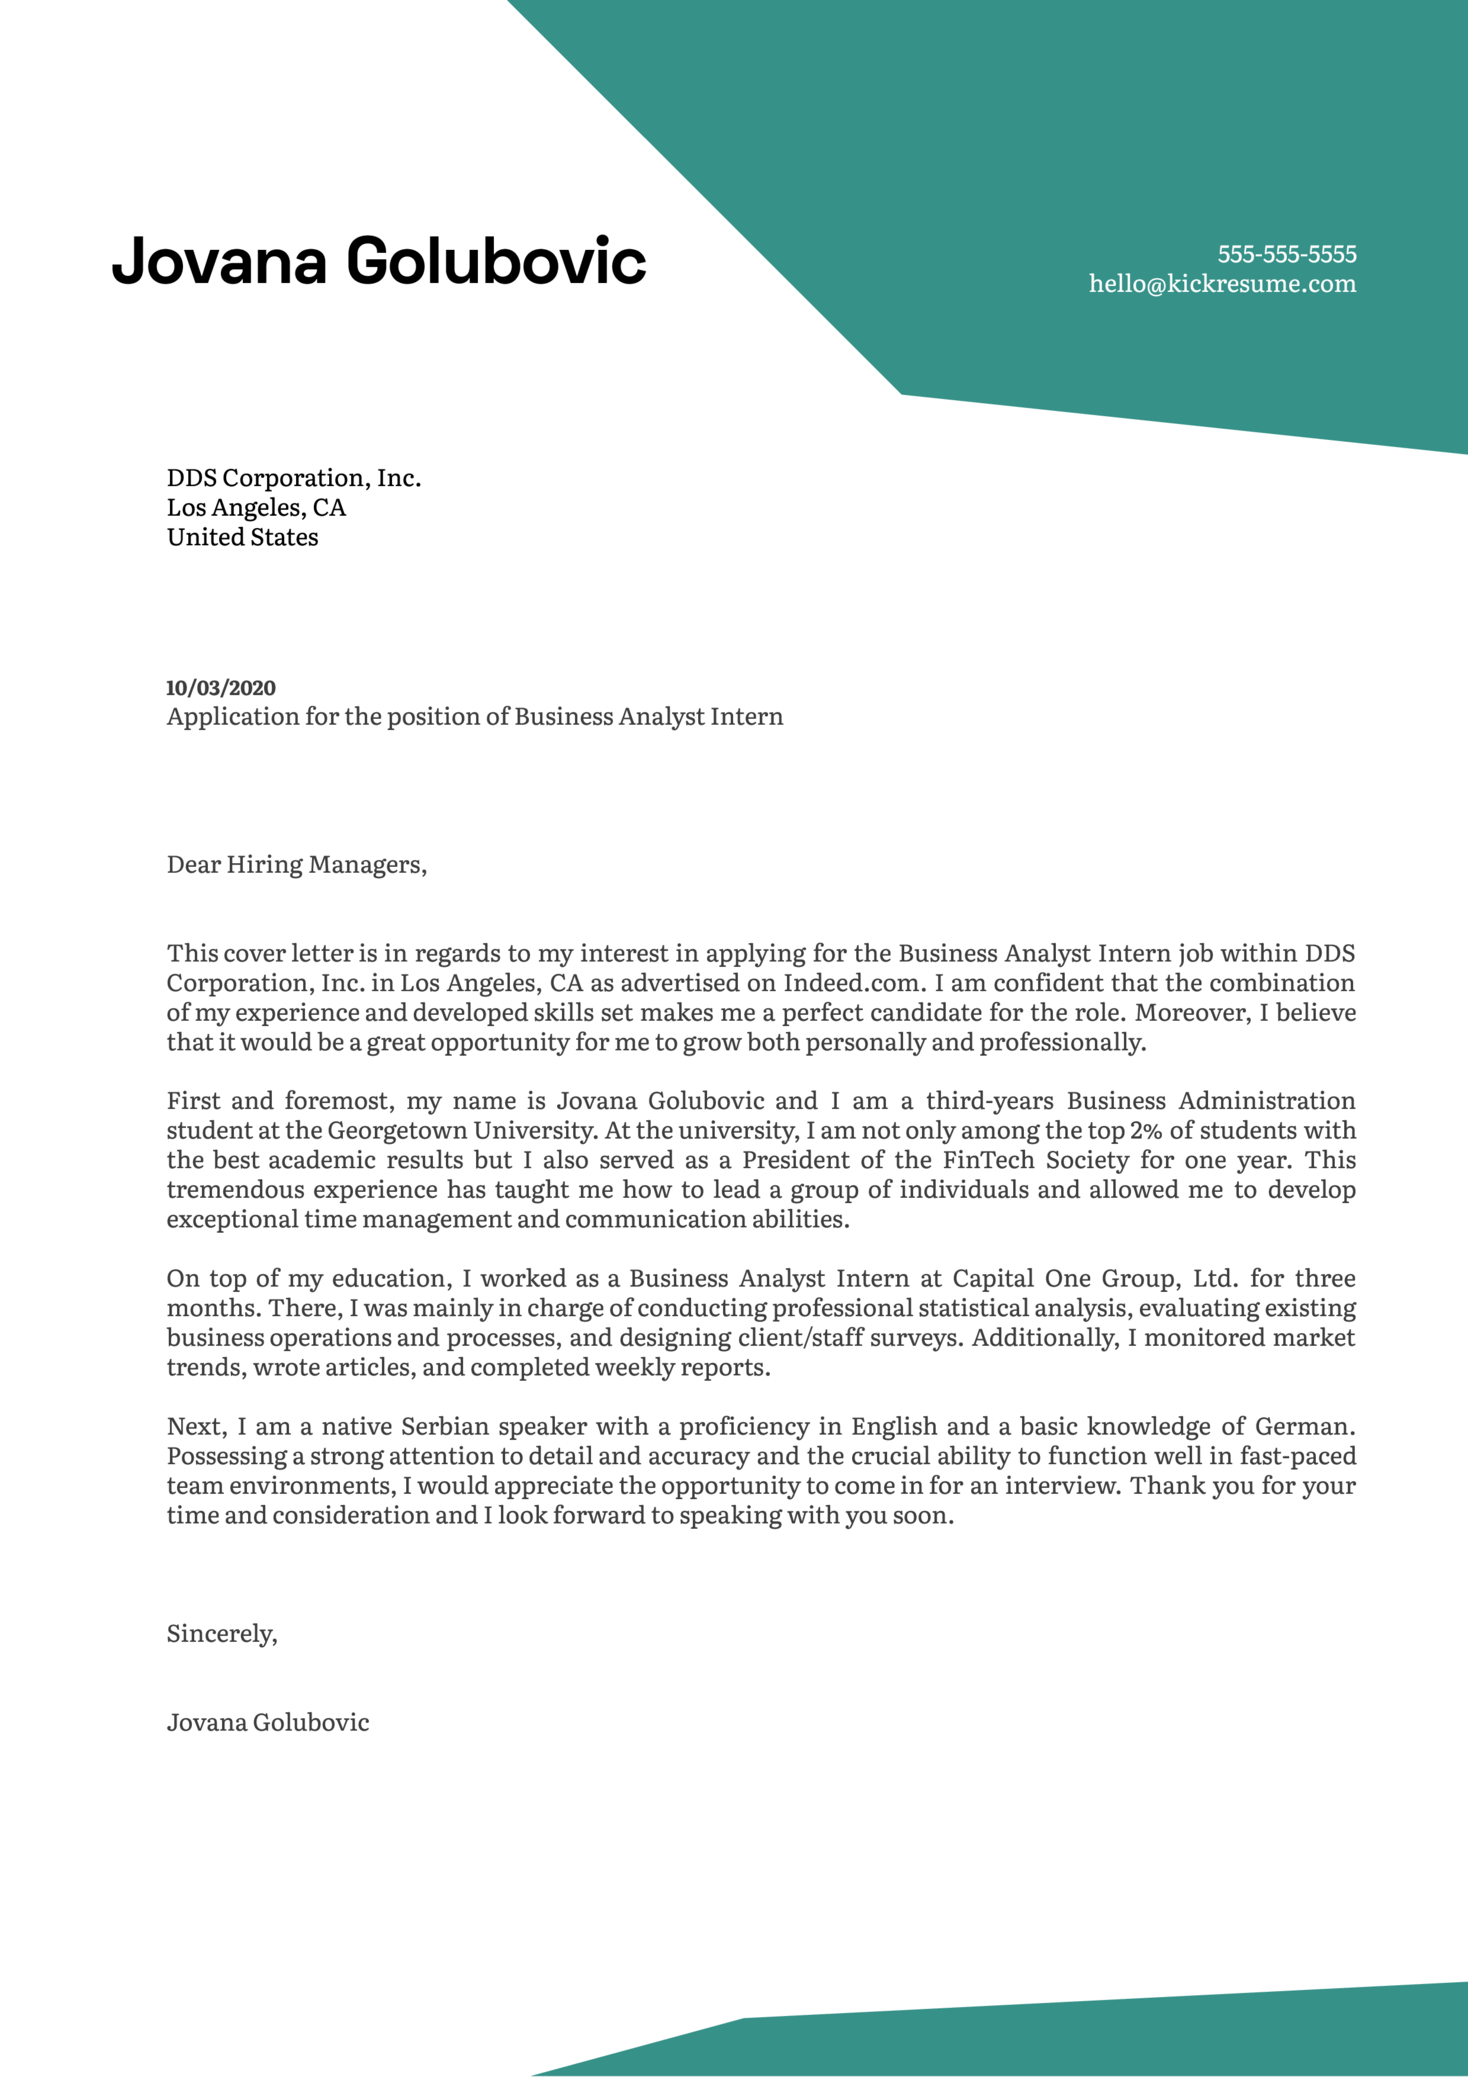 Cover Letter Sample For Internship from s3-eu-west-1.amazonaws.com